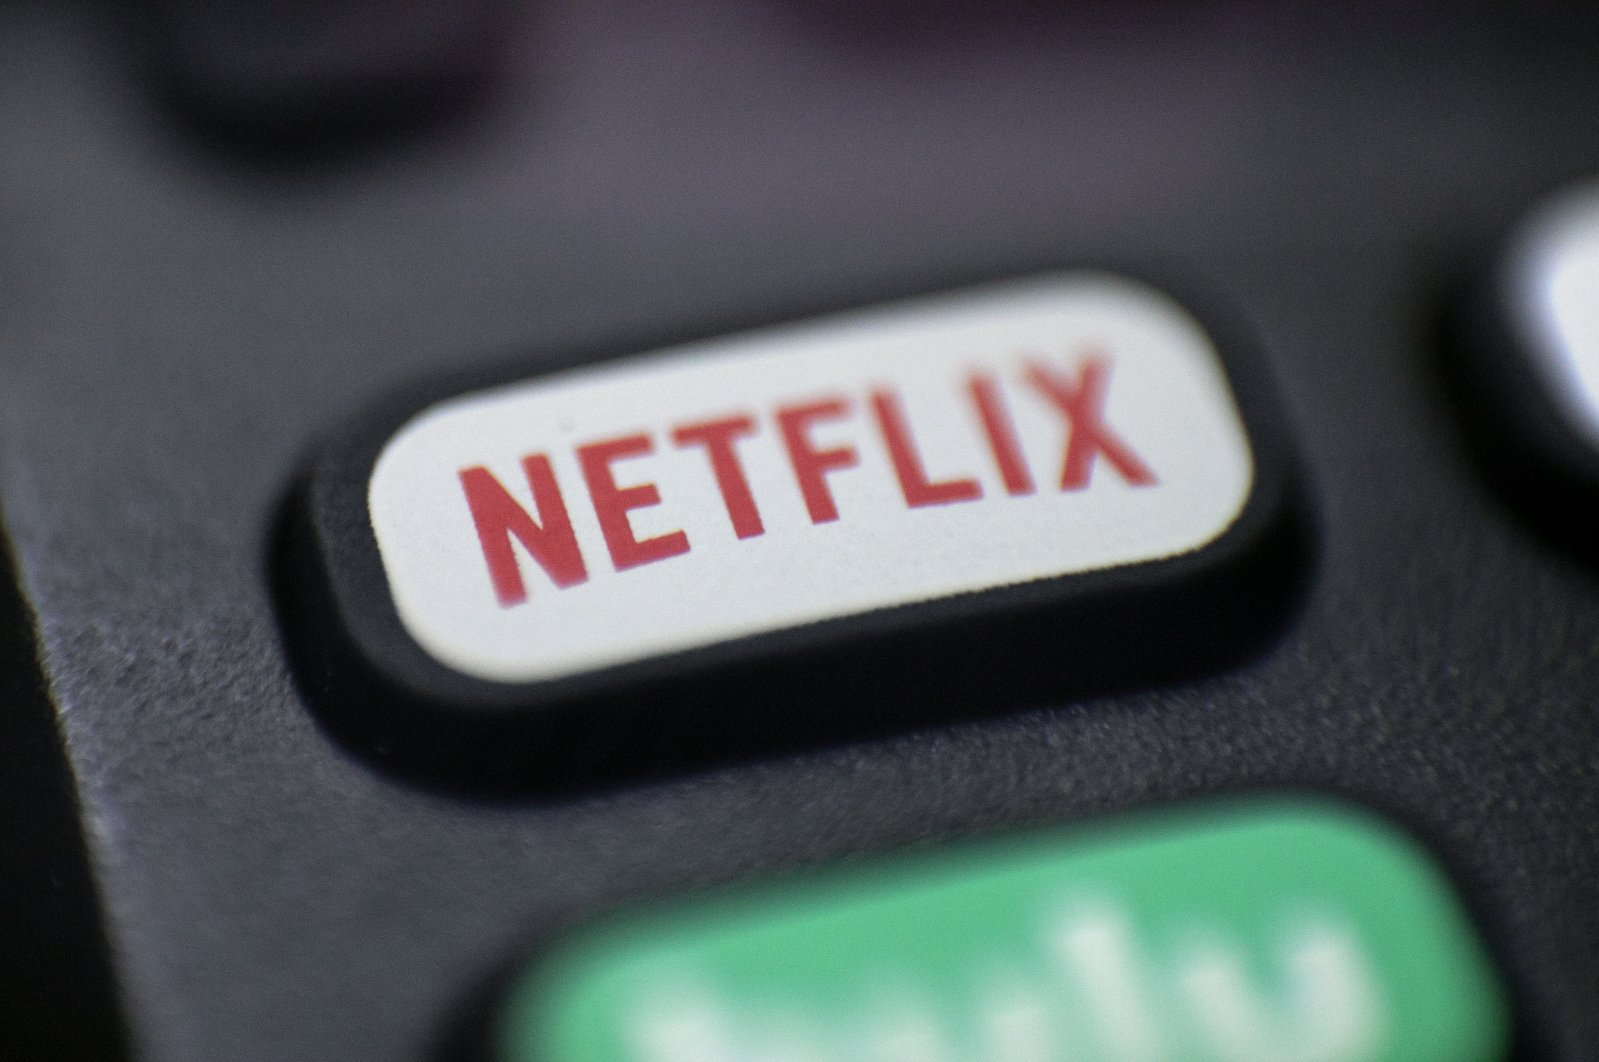 A Netflix logo is seen on a remote control in Portland, Oregon, Aug. 13, 2020. (AP Photo)